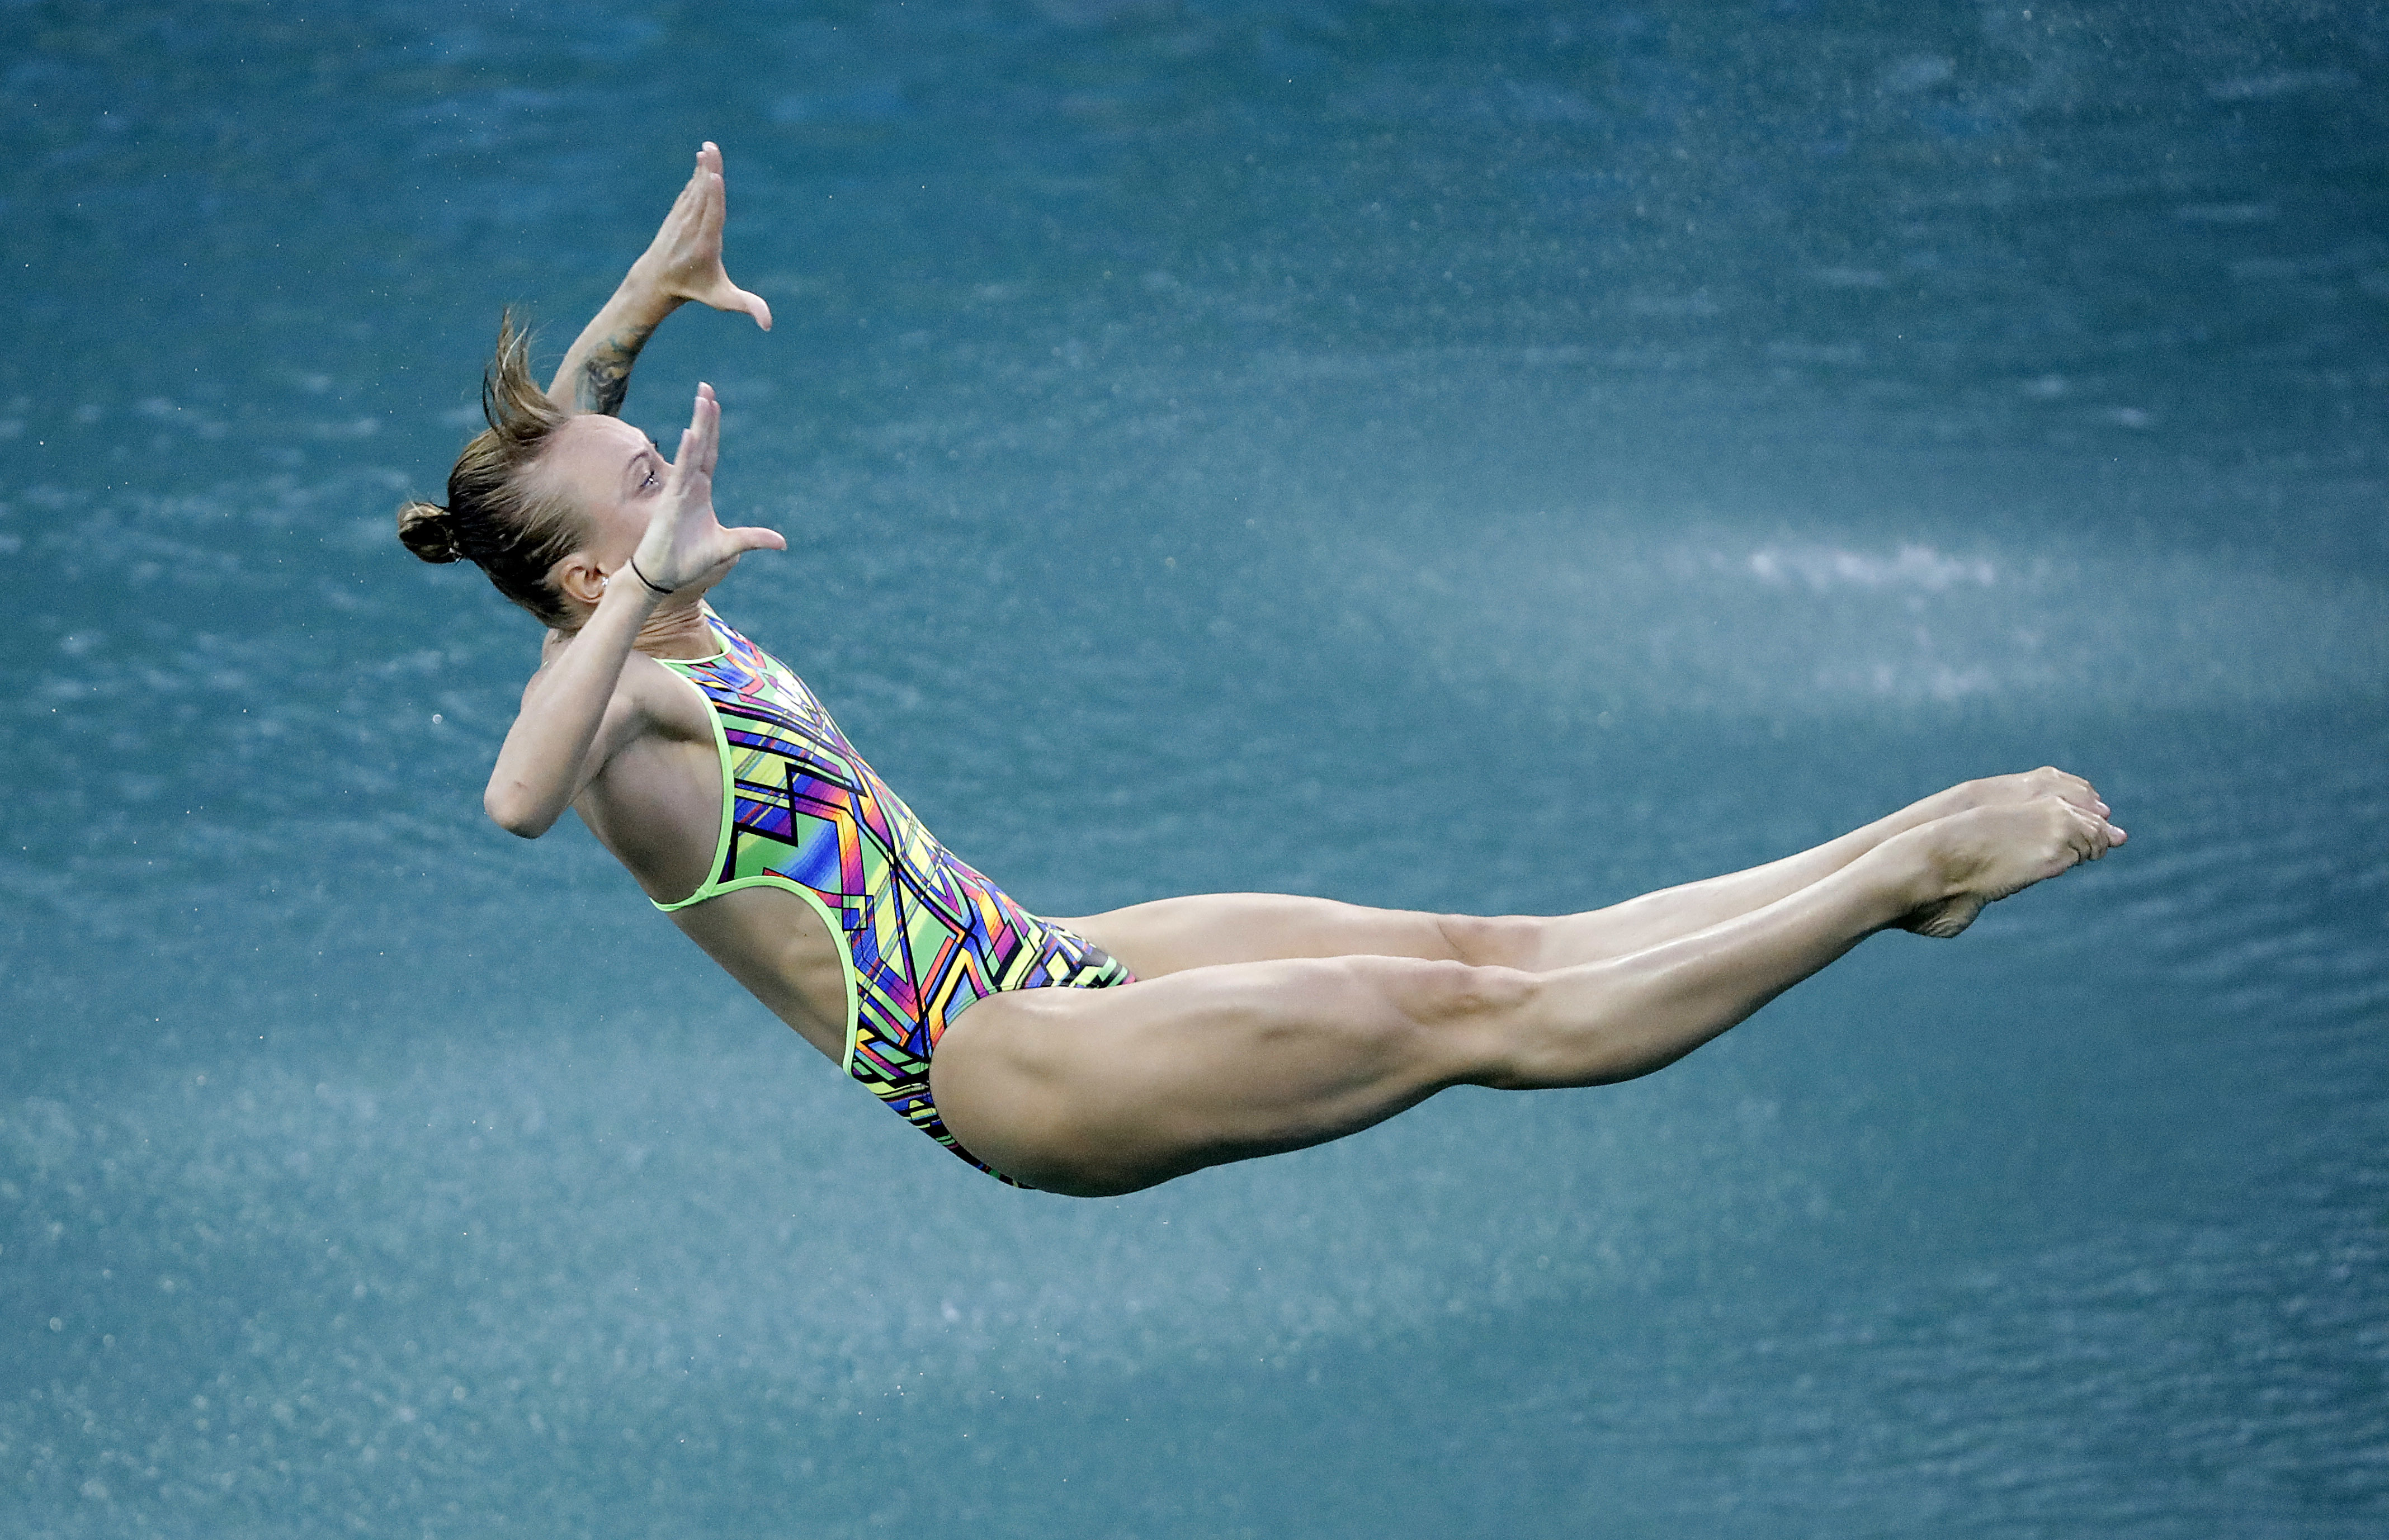 Russia's Nadezhda Bazhina competes during the women's 3-meter springboard diving preliminary round.